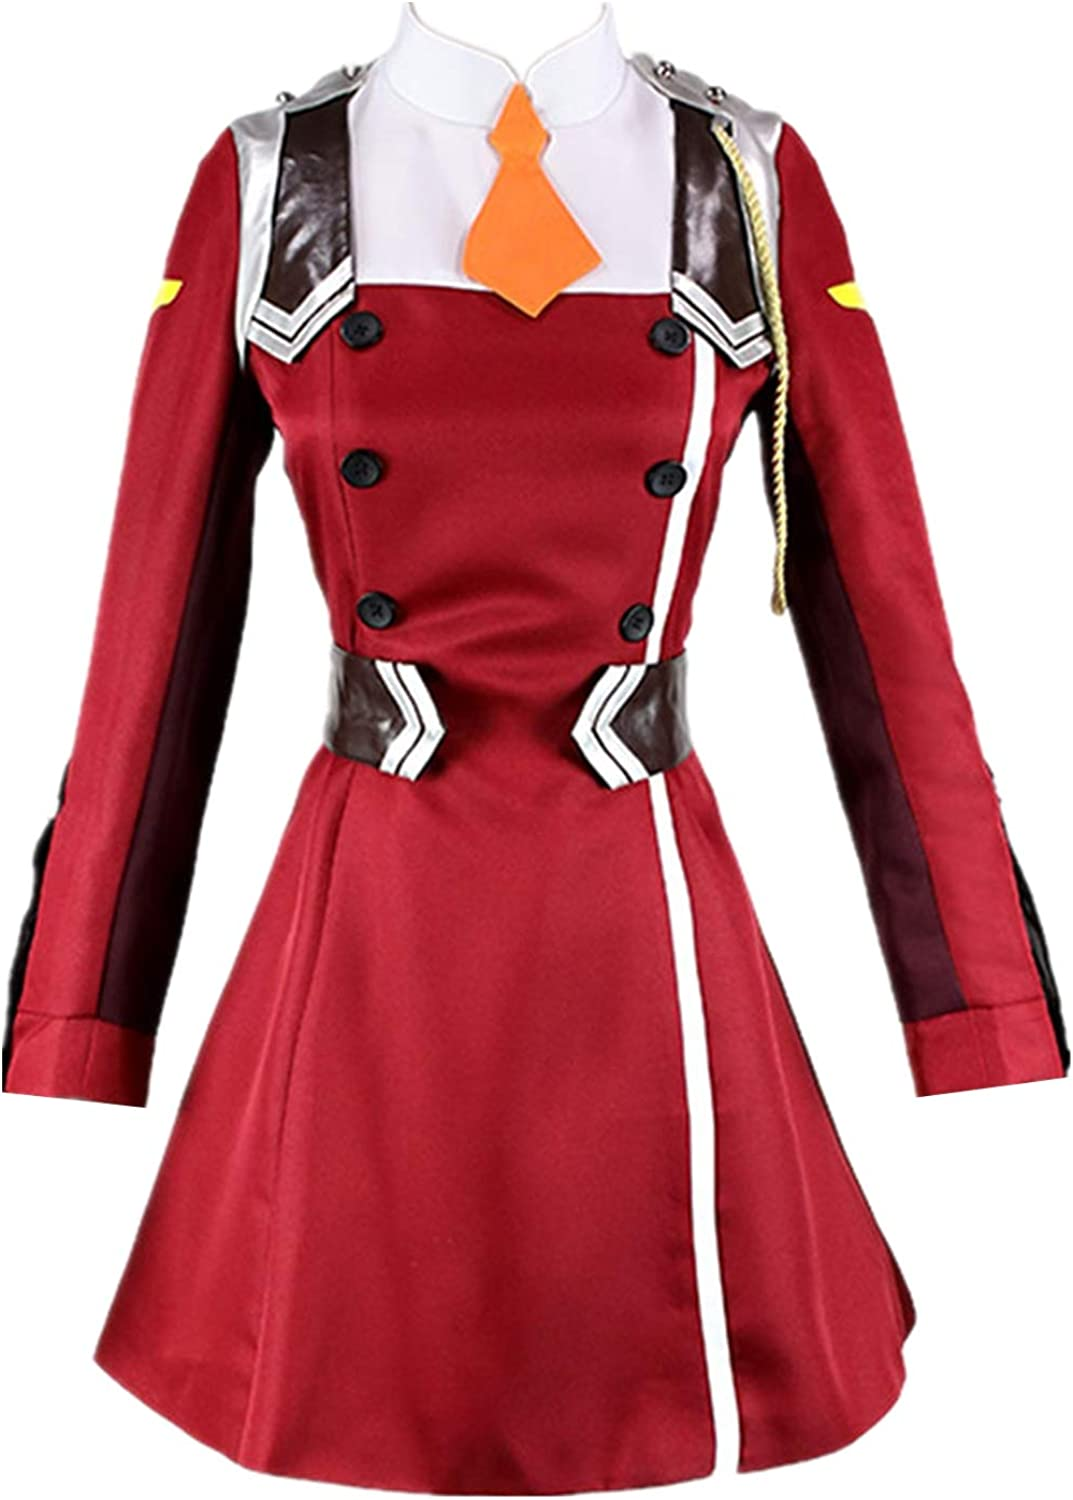 Darling in The FRANXX Manufacturer OFFicial shop Cosplay Cheap sale Code 02 Costume S Zero Two